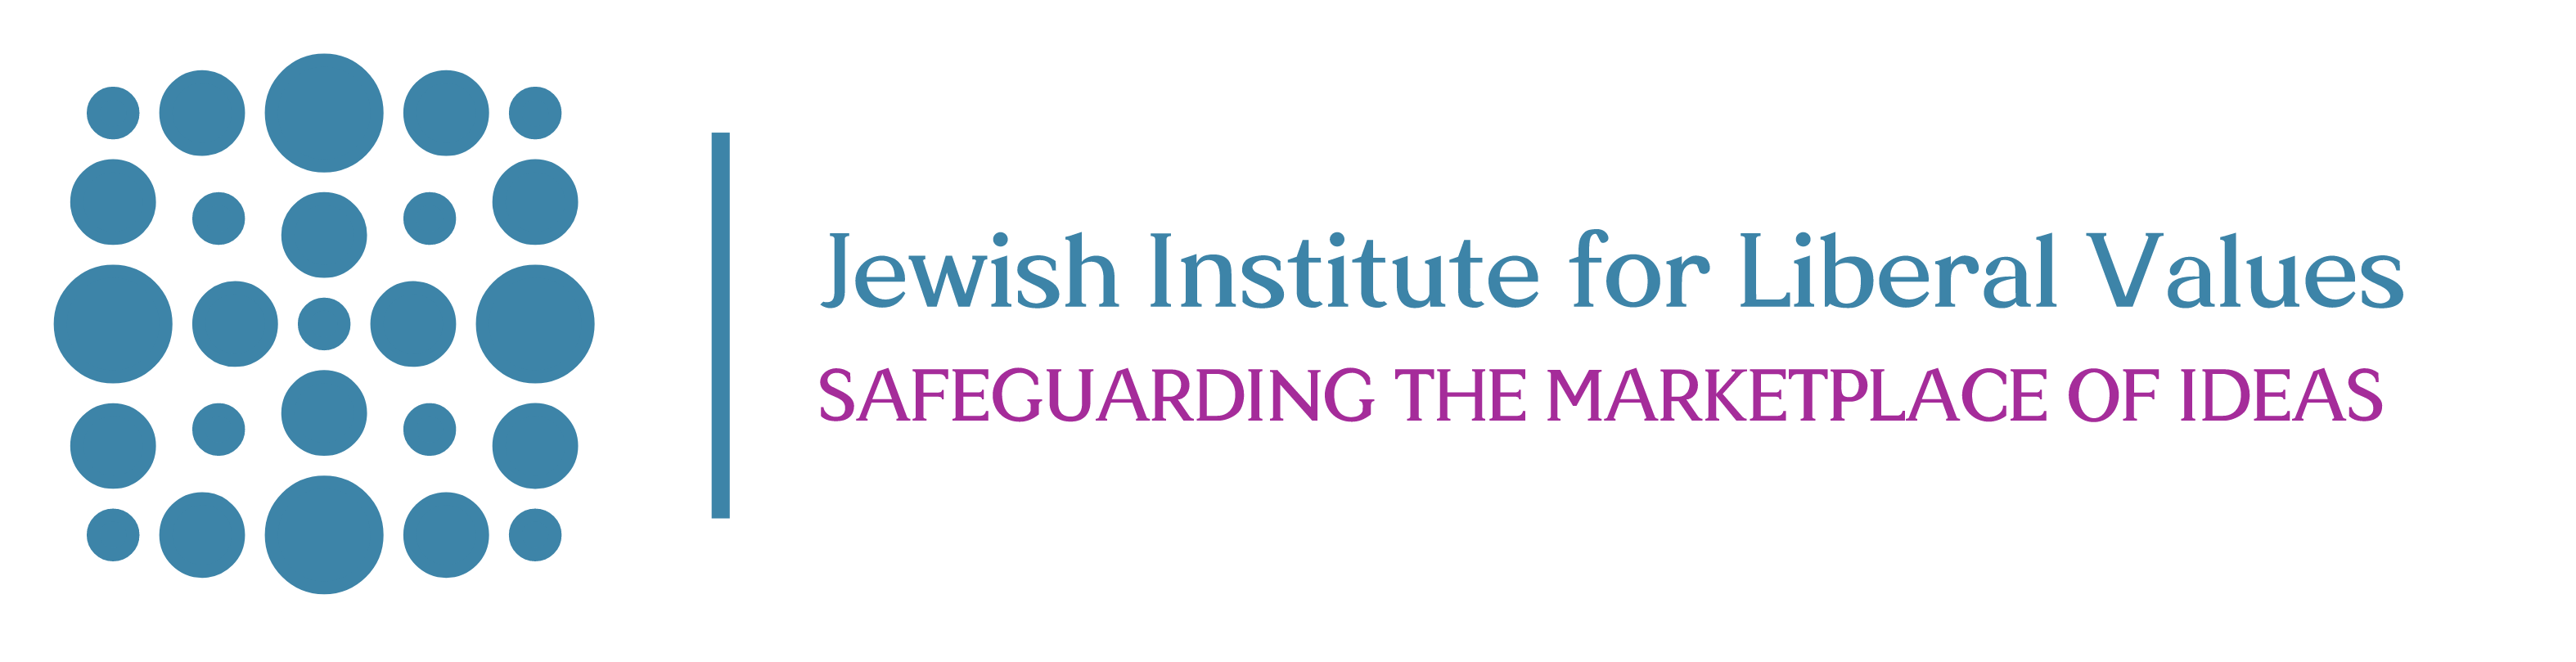 Jewish Institute for Liberal Values